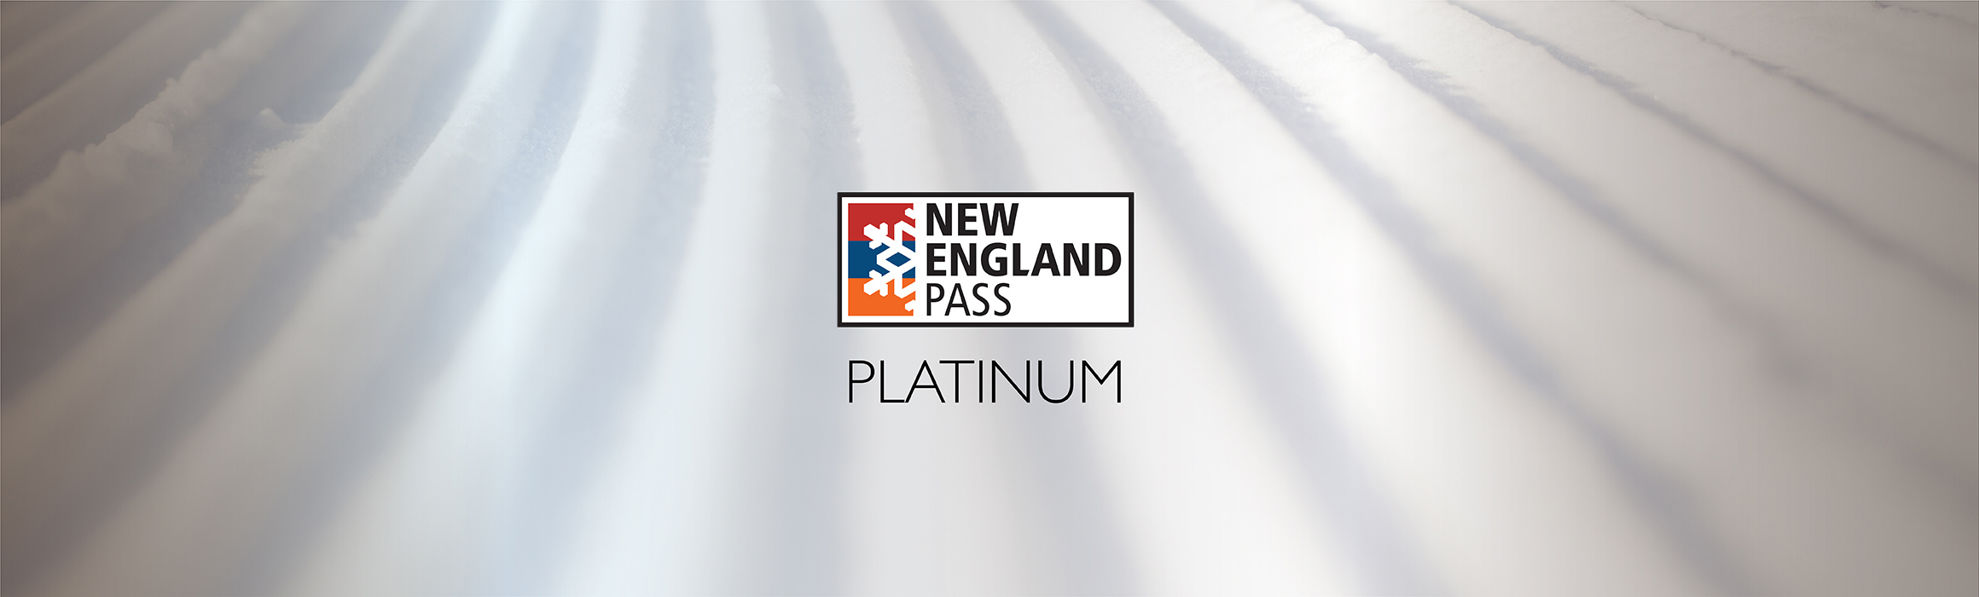 Picture of Platinum Pass